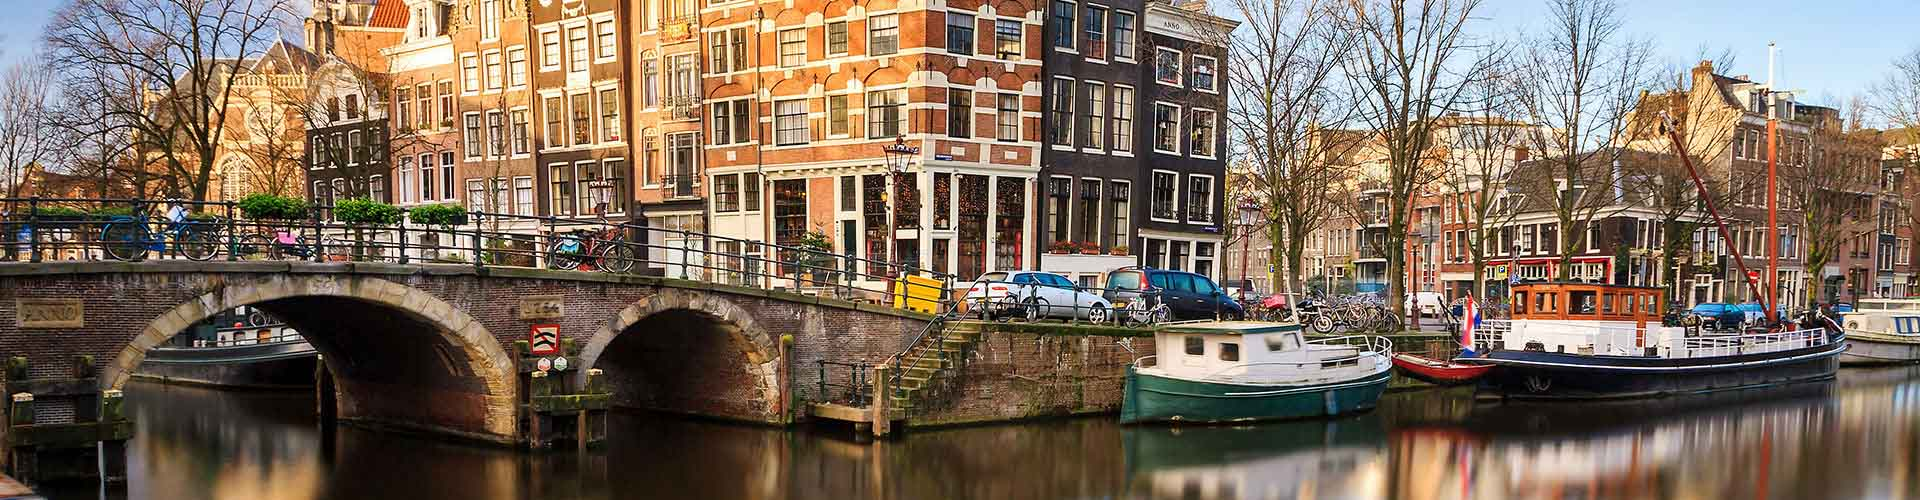 Amsterdam – Hostels in Amsterdam. Maps for Amsterdam, Photos and Reviews for each hostel in Amsterdam.